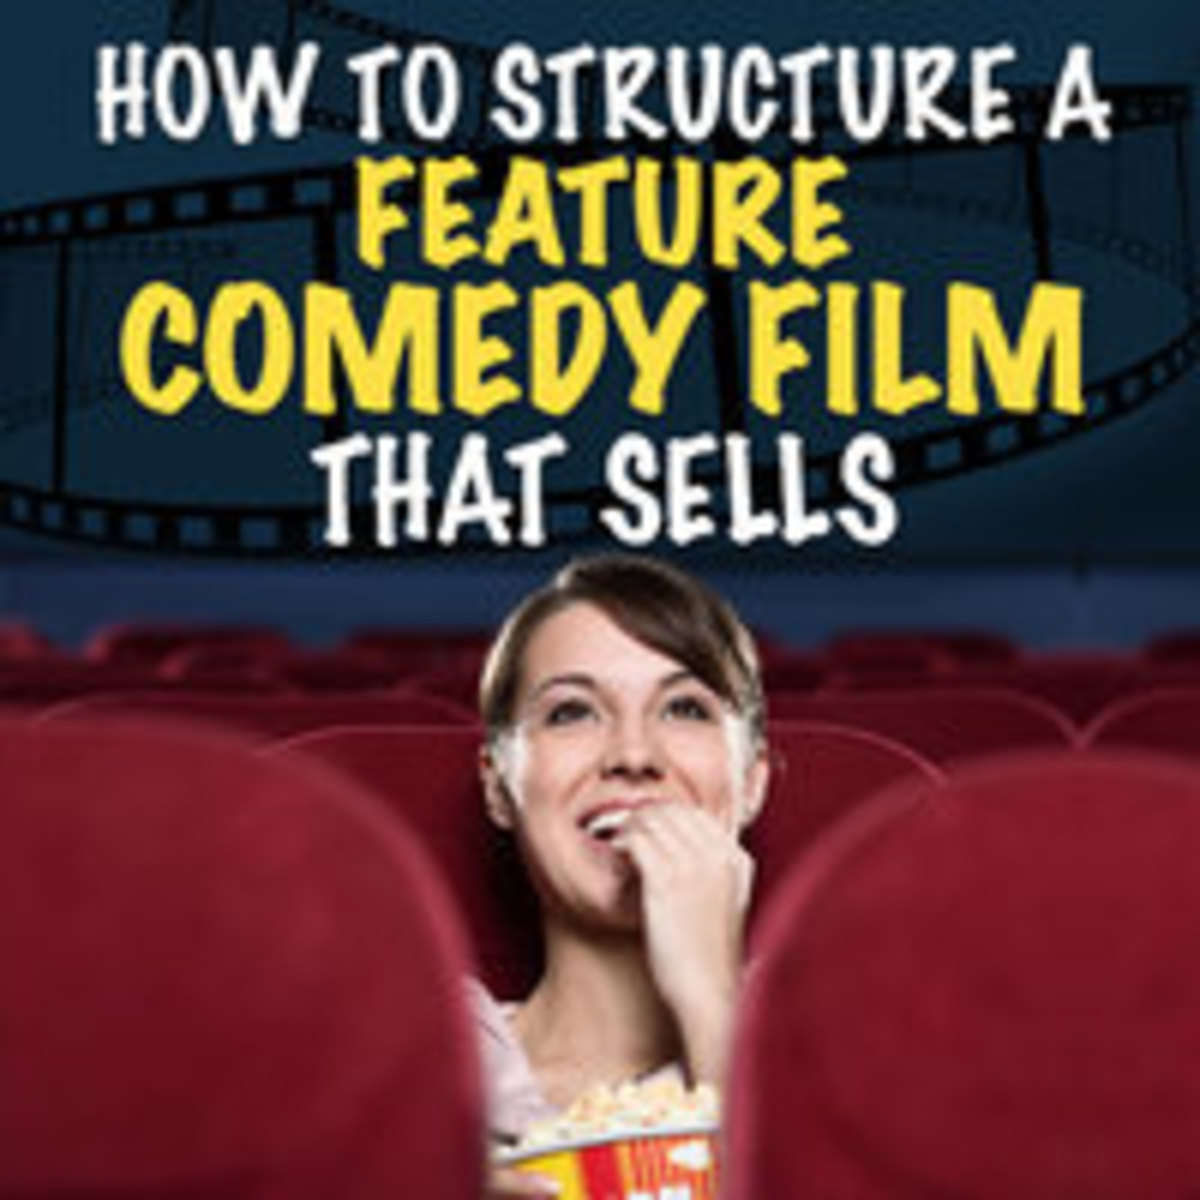 How to Structure a Feature Comedy Film That Sells